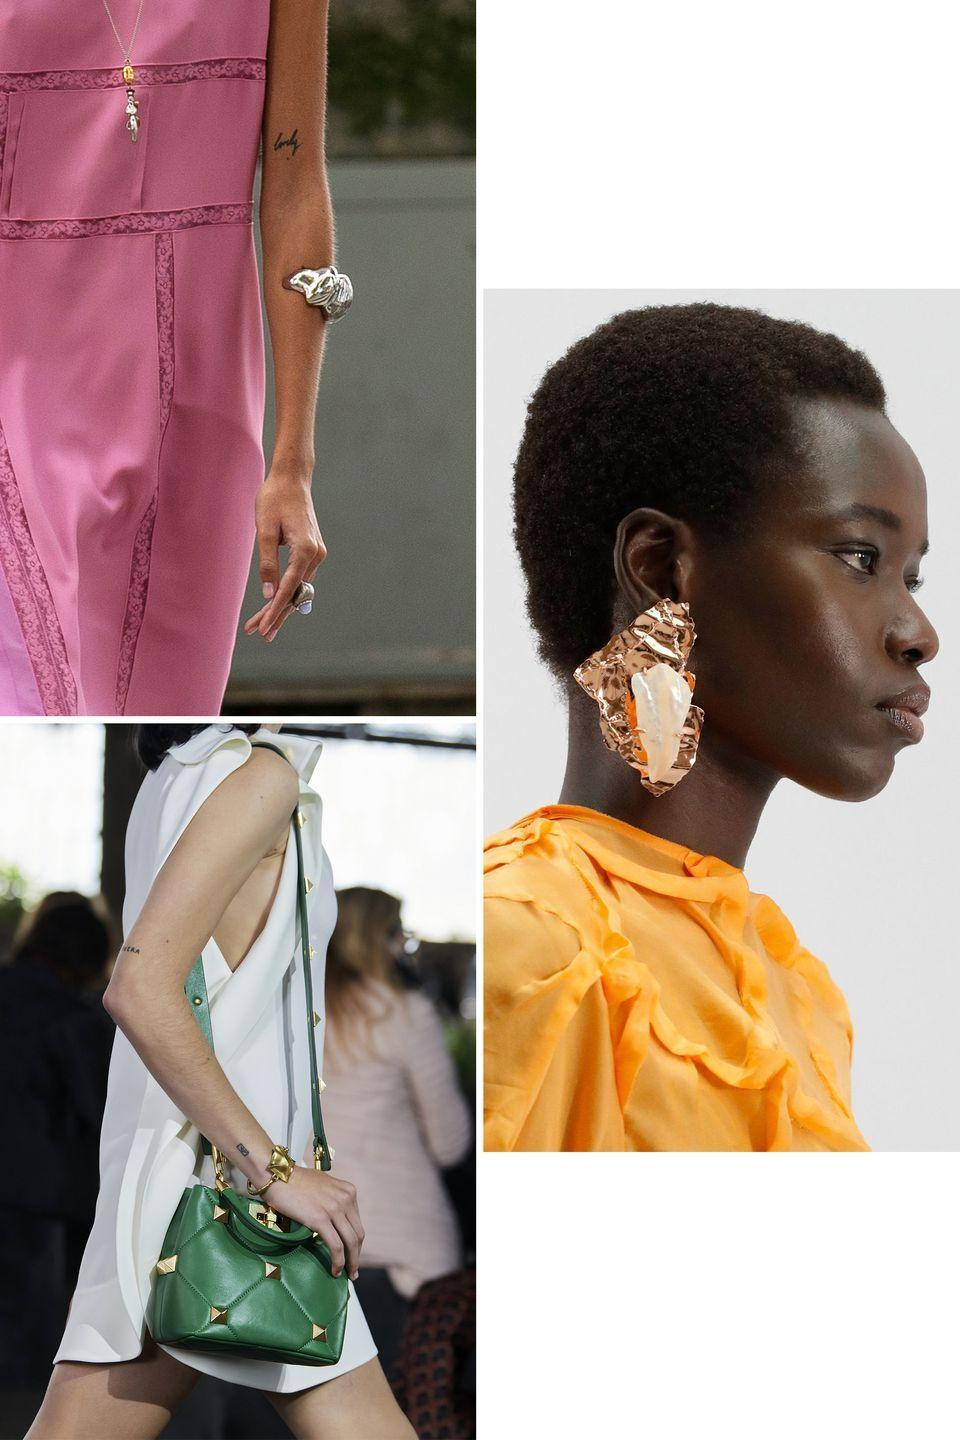 <p>Metals don't always need to have a smooth finish to draw attention. Indeed, hammering gold, silver, and brass can add some oomph to simple silhouettes and cohesion to more abstract ones. It's a technique that has been used over the centuries and took center stage in a number of collections during the spring 2021 season. </p><p>Acne Studios showcased oversized copper earrings and chokers in organic shapes, appearing as if they were unearthed from an excavation site. Chloé also followed the same idea, but presented a much more refined assortment of cuffs that resembled pieces from the Bronze Age. Meanwhile Valentino brought the technique into the modern era, adding small grooves to its signature stud jewelry. </p><p>With hammered metals, it is the texture that takes center stage. So if you want to nail this trend, make sure to shop the selection below. </p><p><em>Clockwise from top left: Chloé, Acne Studios, Valentino. </em></p>